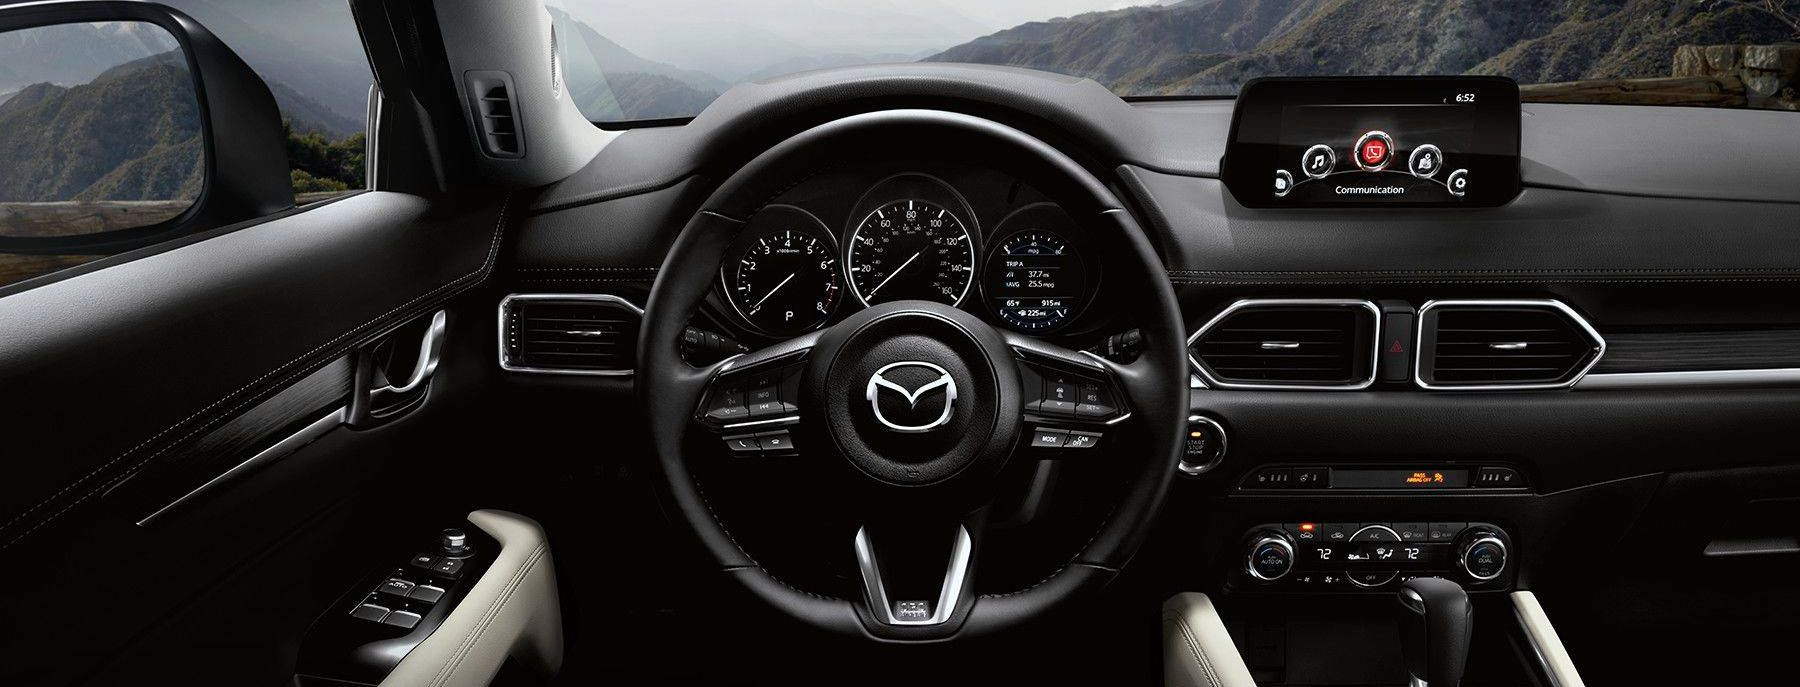 Get Behind the Wheel of the Mazda CX-5!